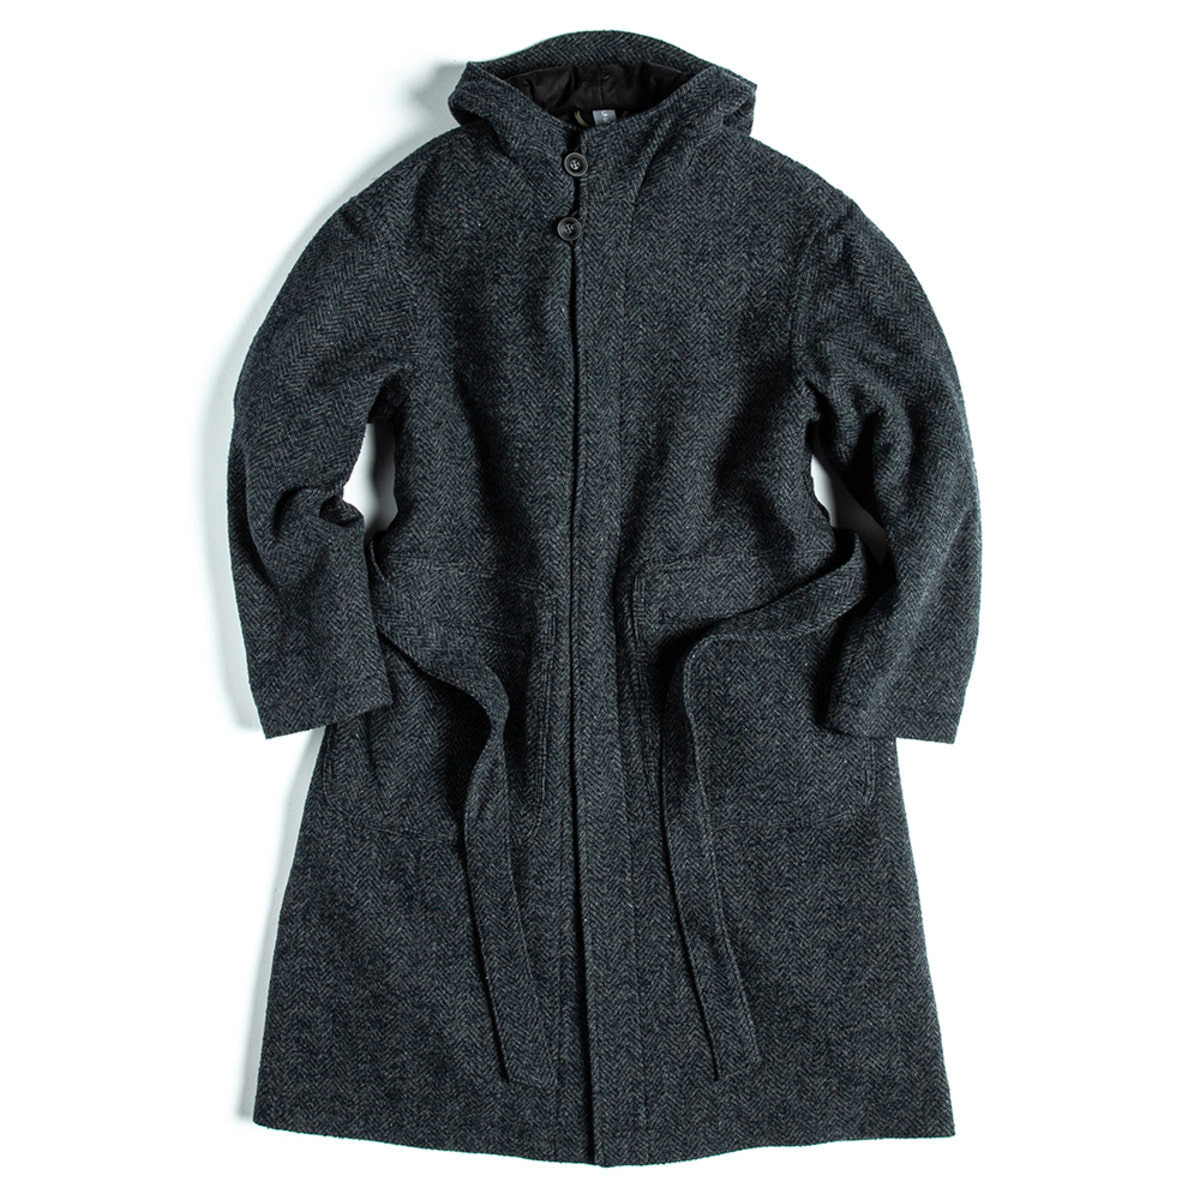 [UNAFFECTED] HOODED ROBE COAT 'CHARCOAL NAVY'